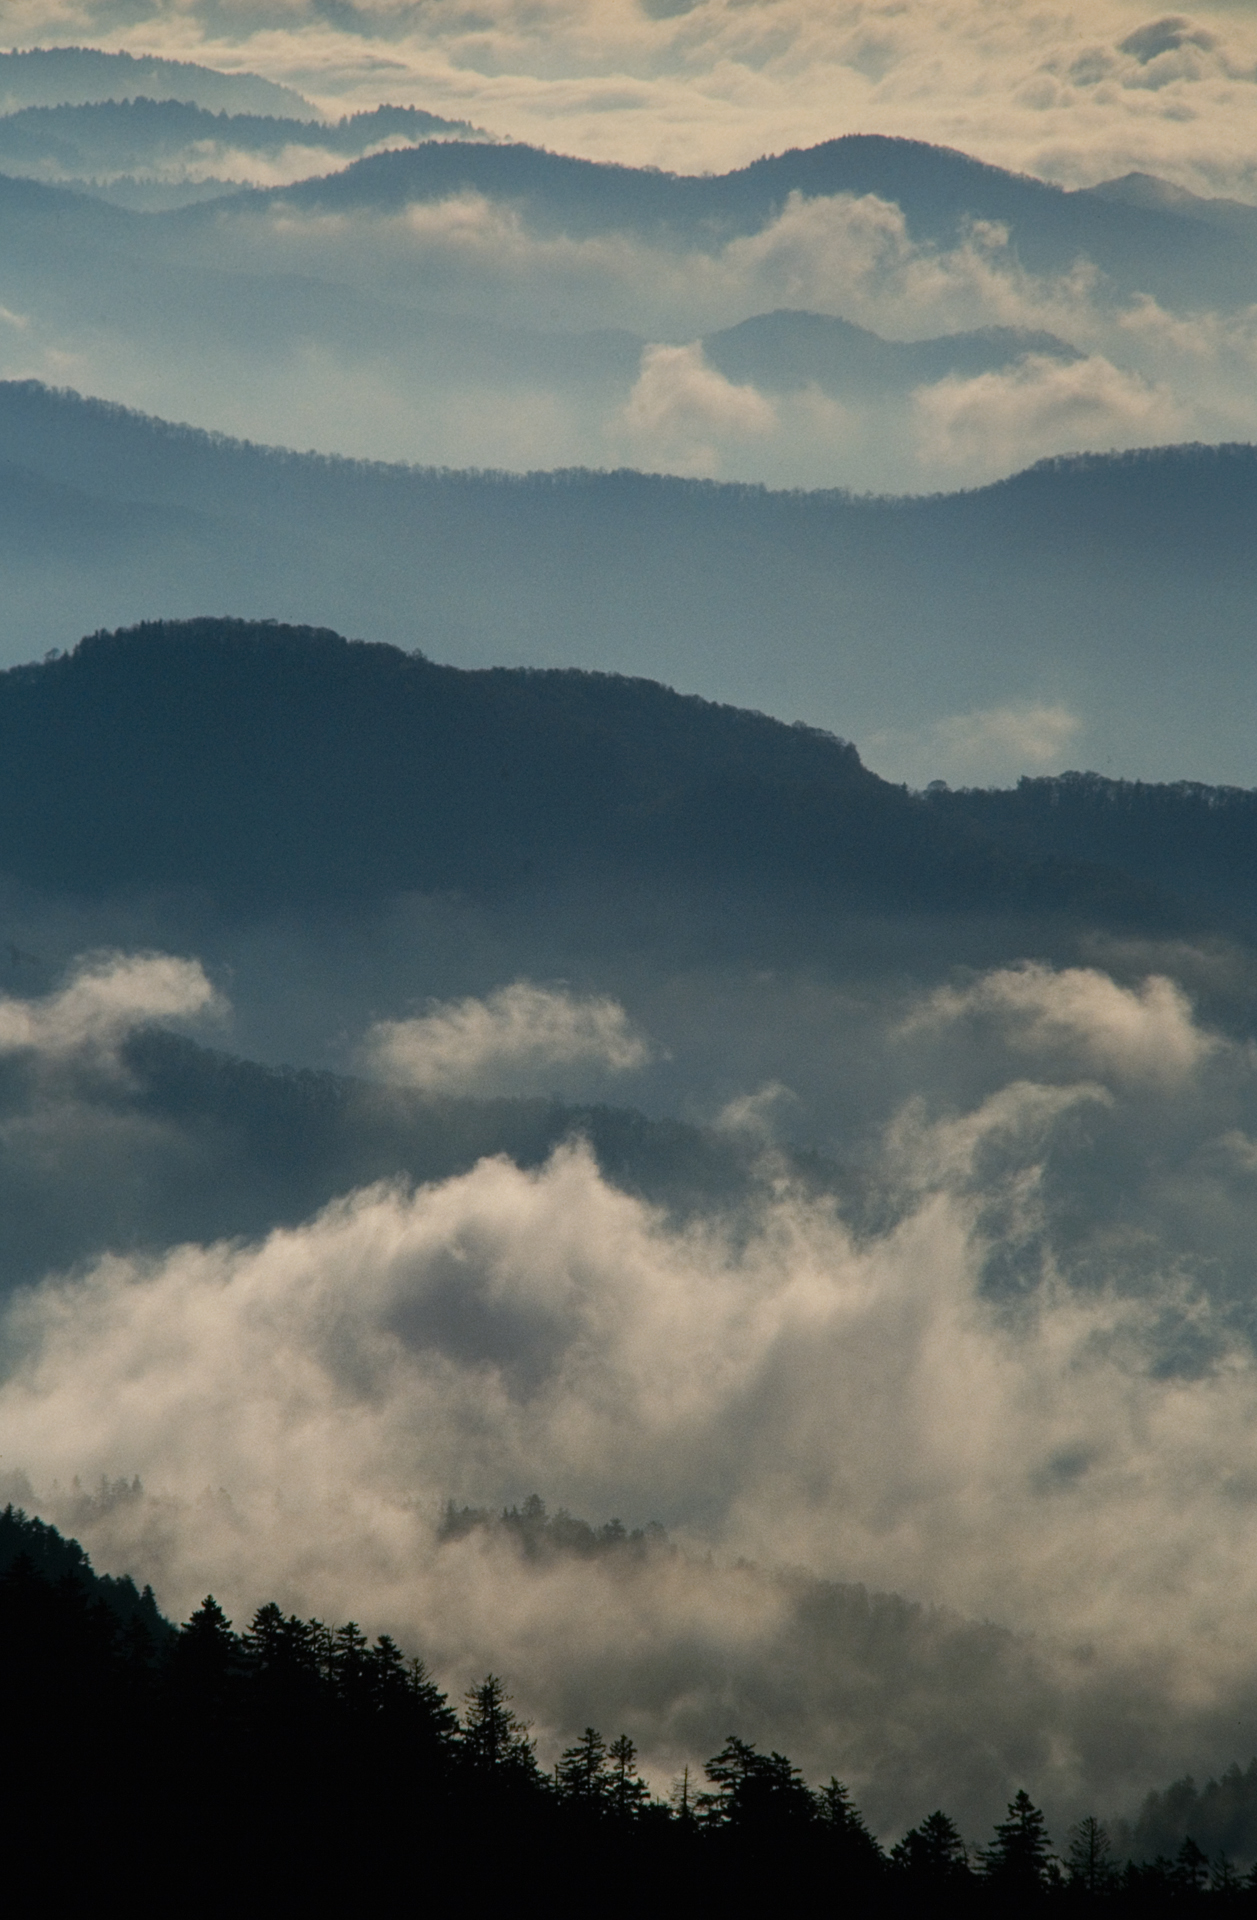 The classic smoky-blue mist view of the eastern ridges from Clingman's Dome, the highest point on the Appalachian Trail.  Clingman's Dome, Tennessee